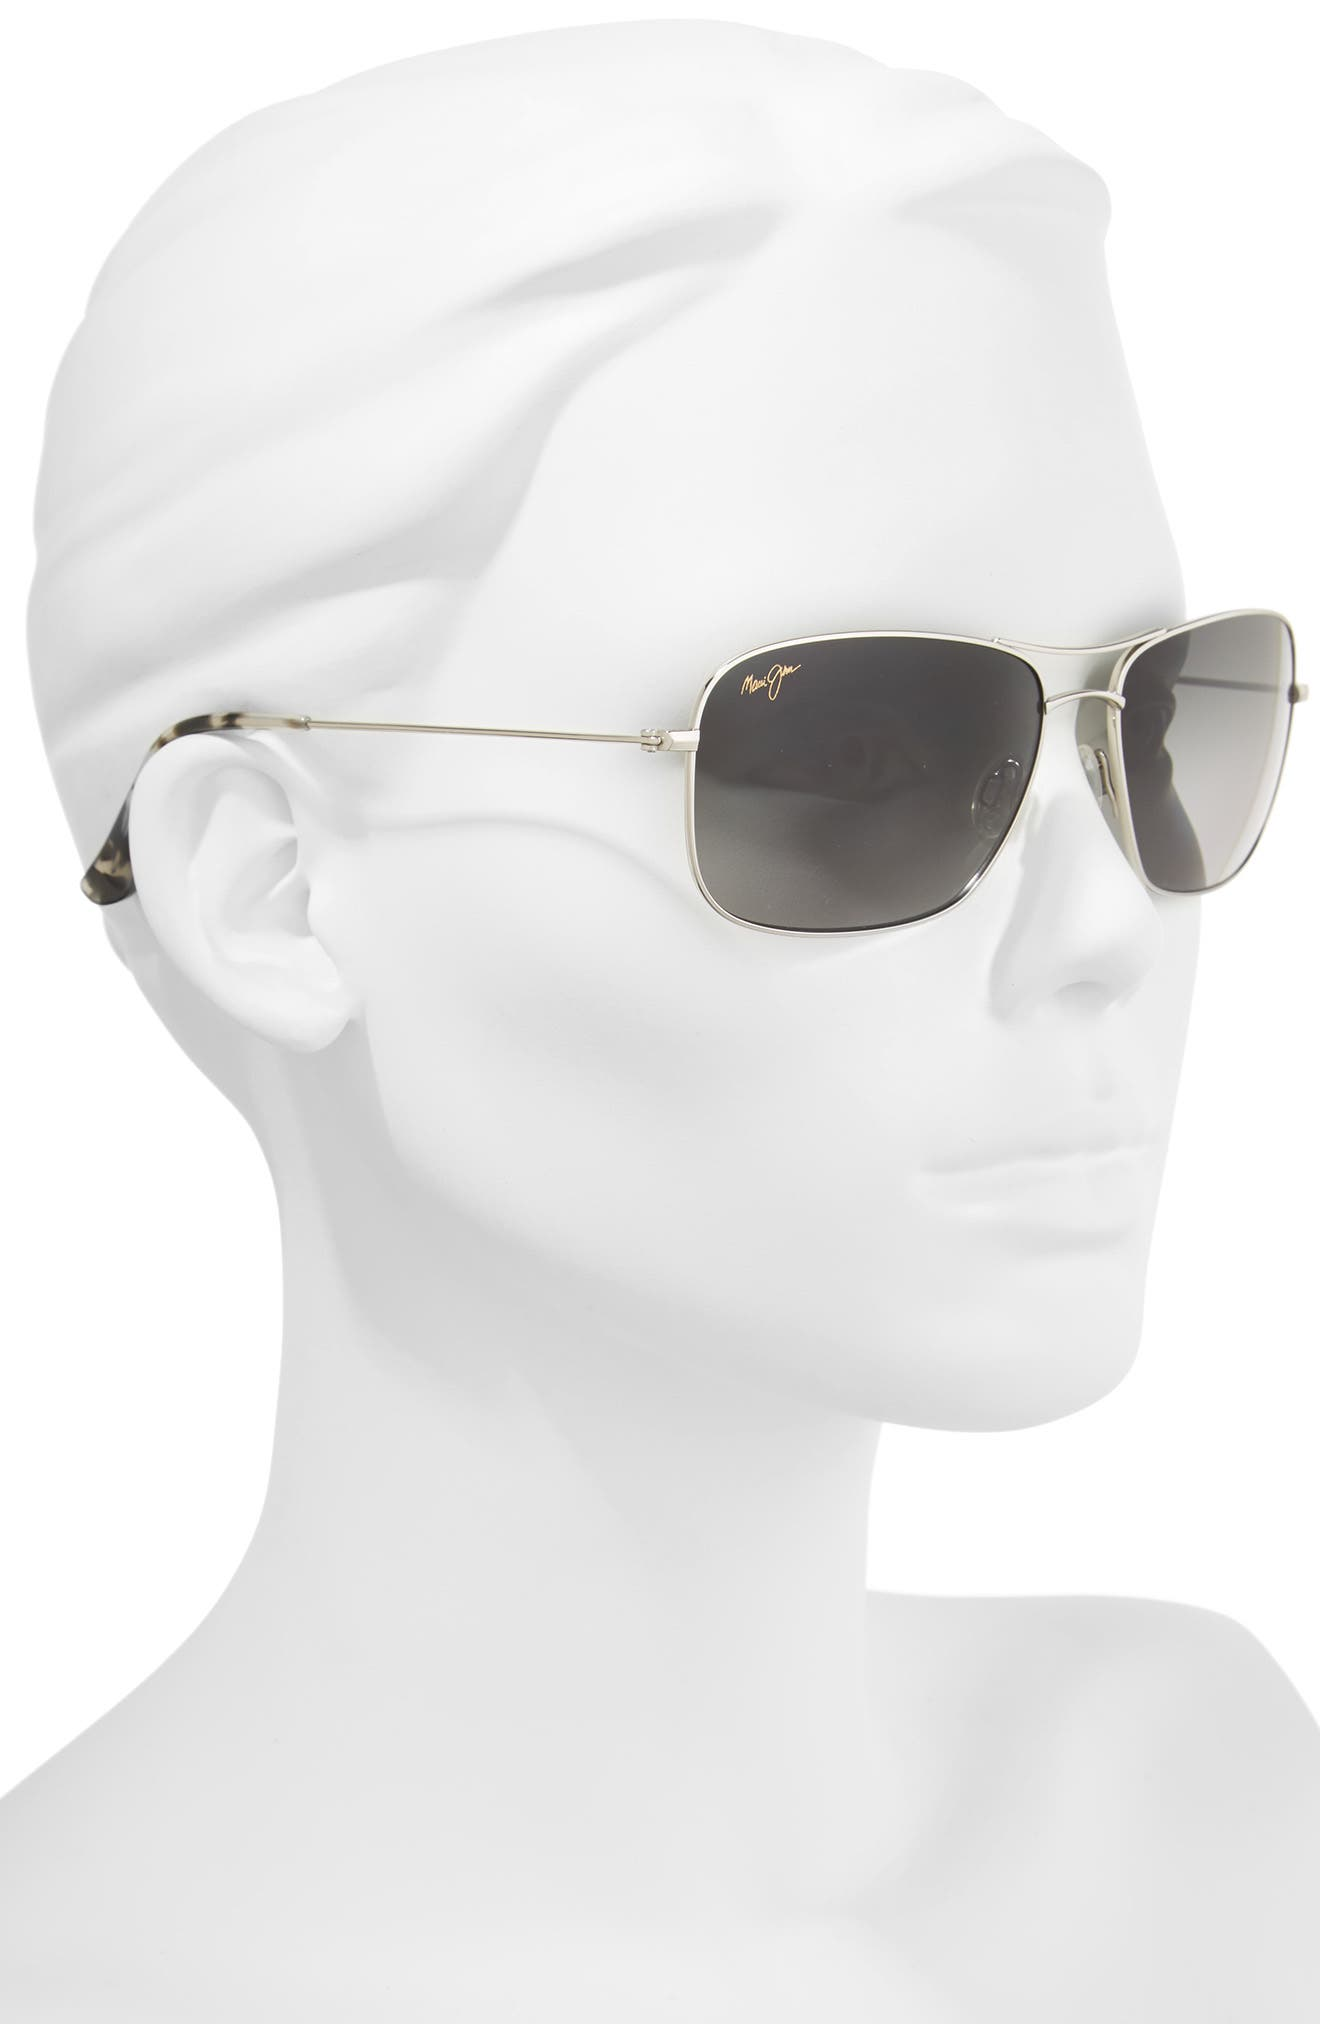 Wiki Wiki 59mm PolarizedPlus2<sup>®</sup> Aviator Sunglasses,                             Alternate thumbnail 2, color,                             SILVER/ NEUTRAL GREY